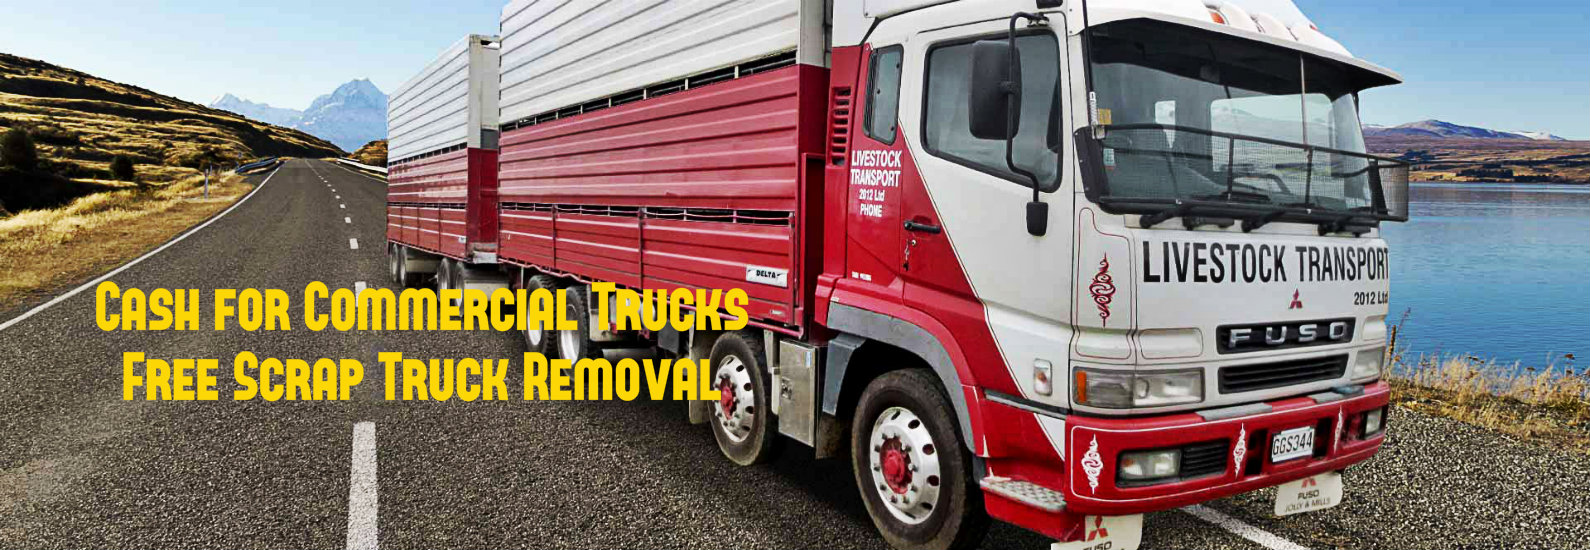 Unwanted Truck Dismantlers Sydney - Cash for Cars Removal